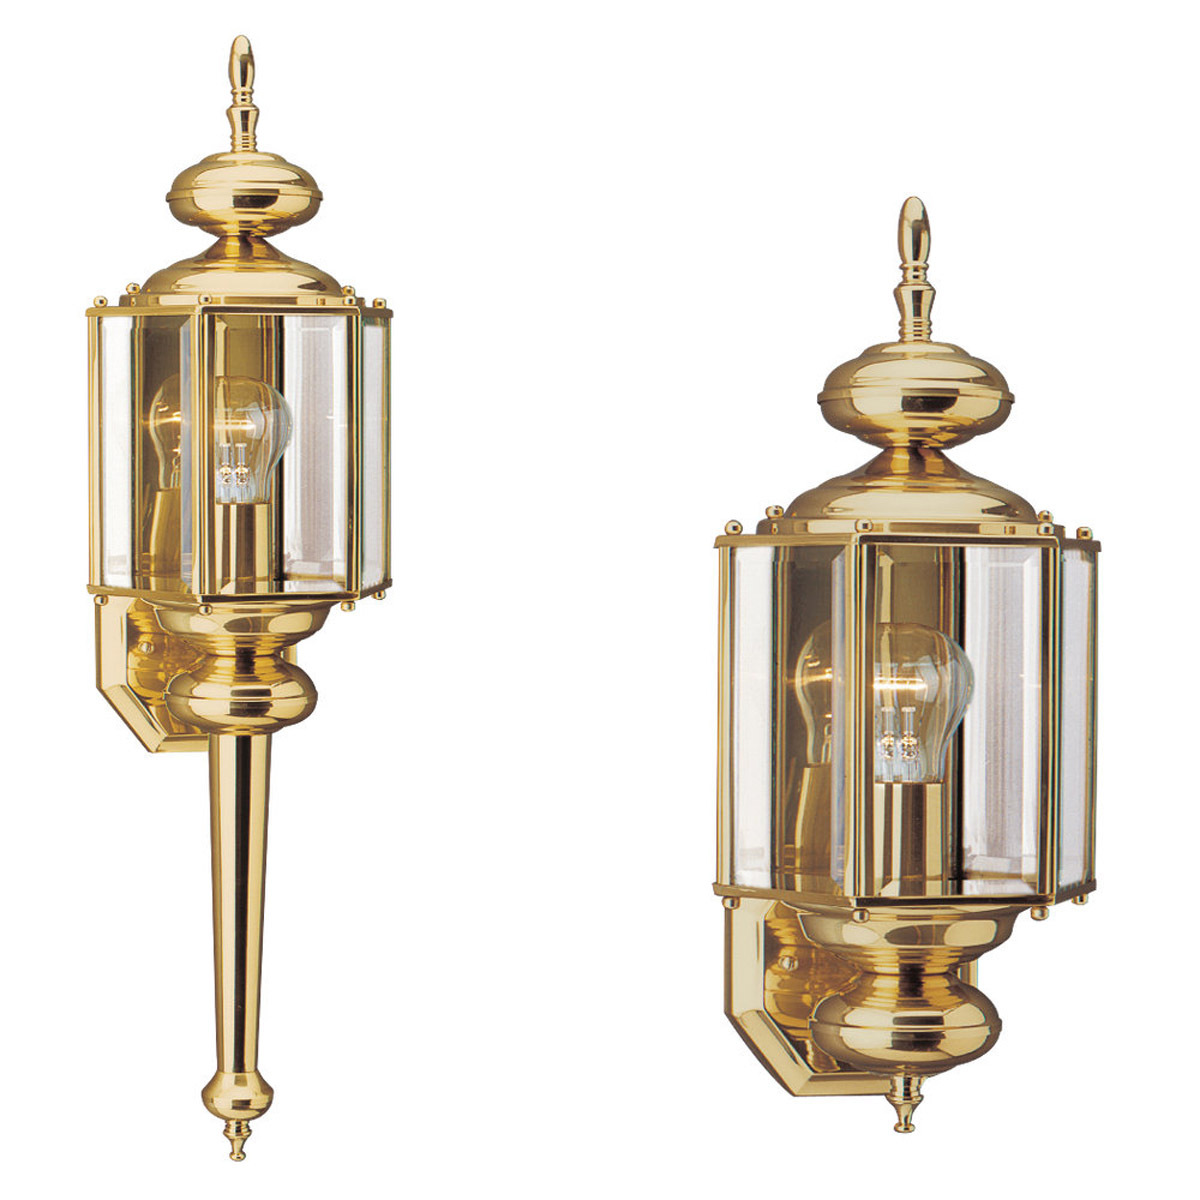 Sea Gull Lighting Classico 1 Light Outdoor Wall Lantern in Polished Brass 8510-02 photo